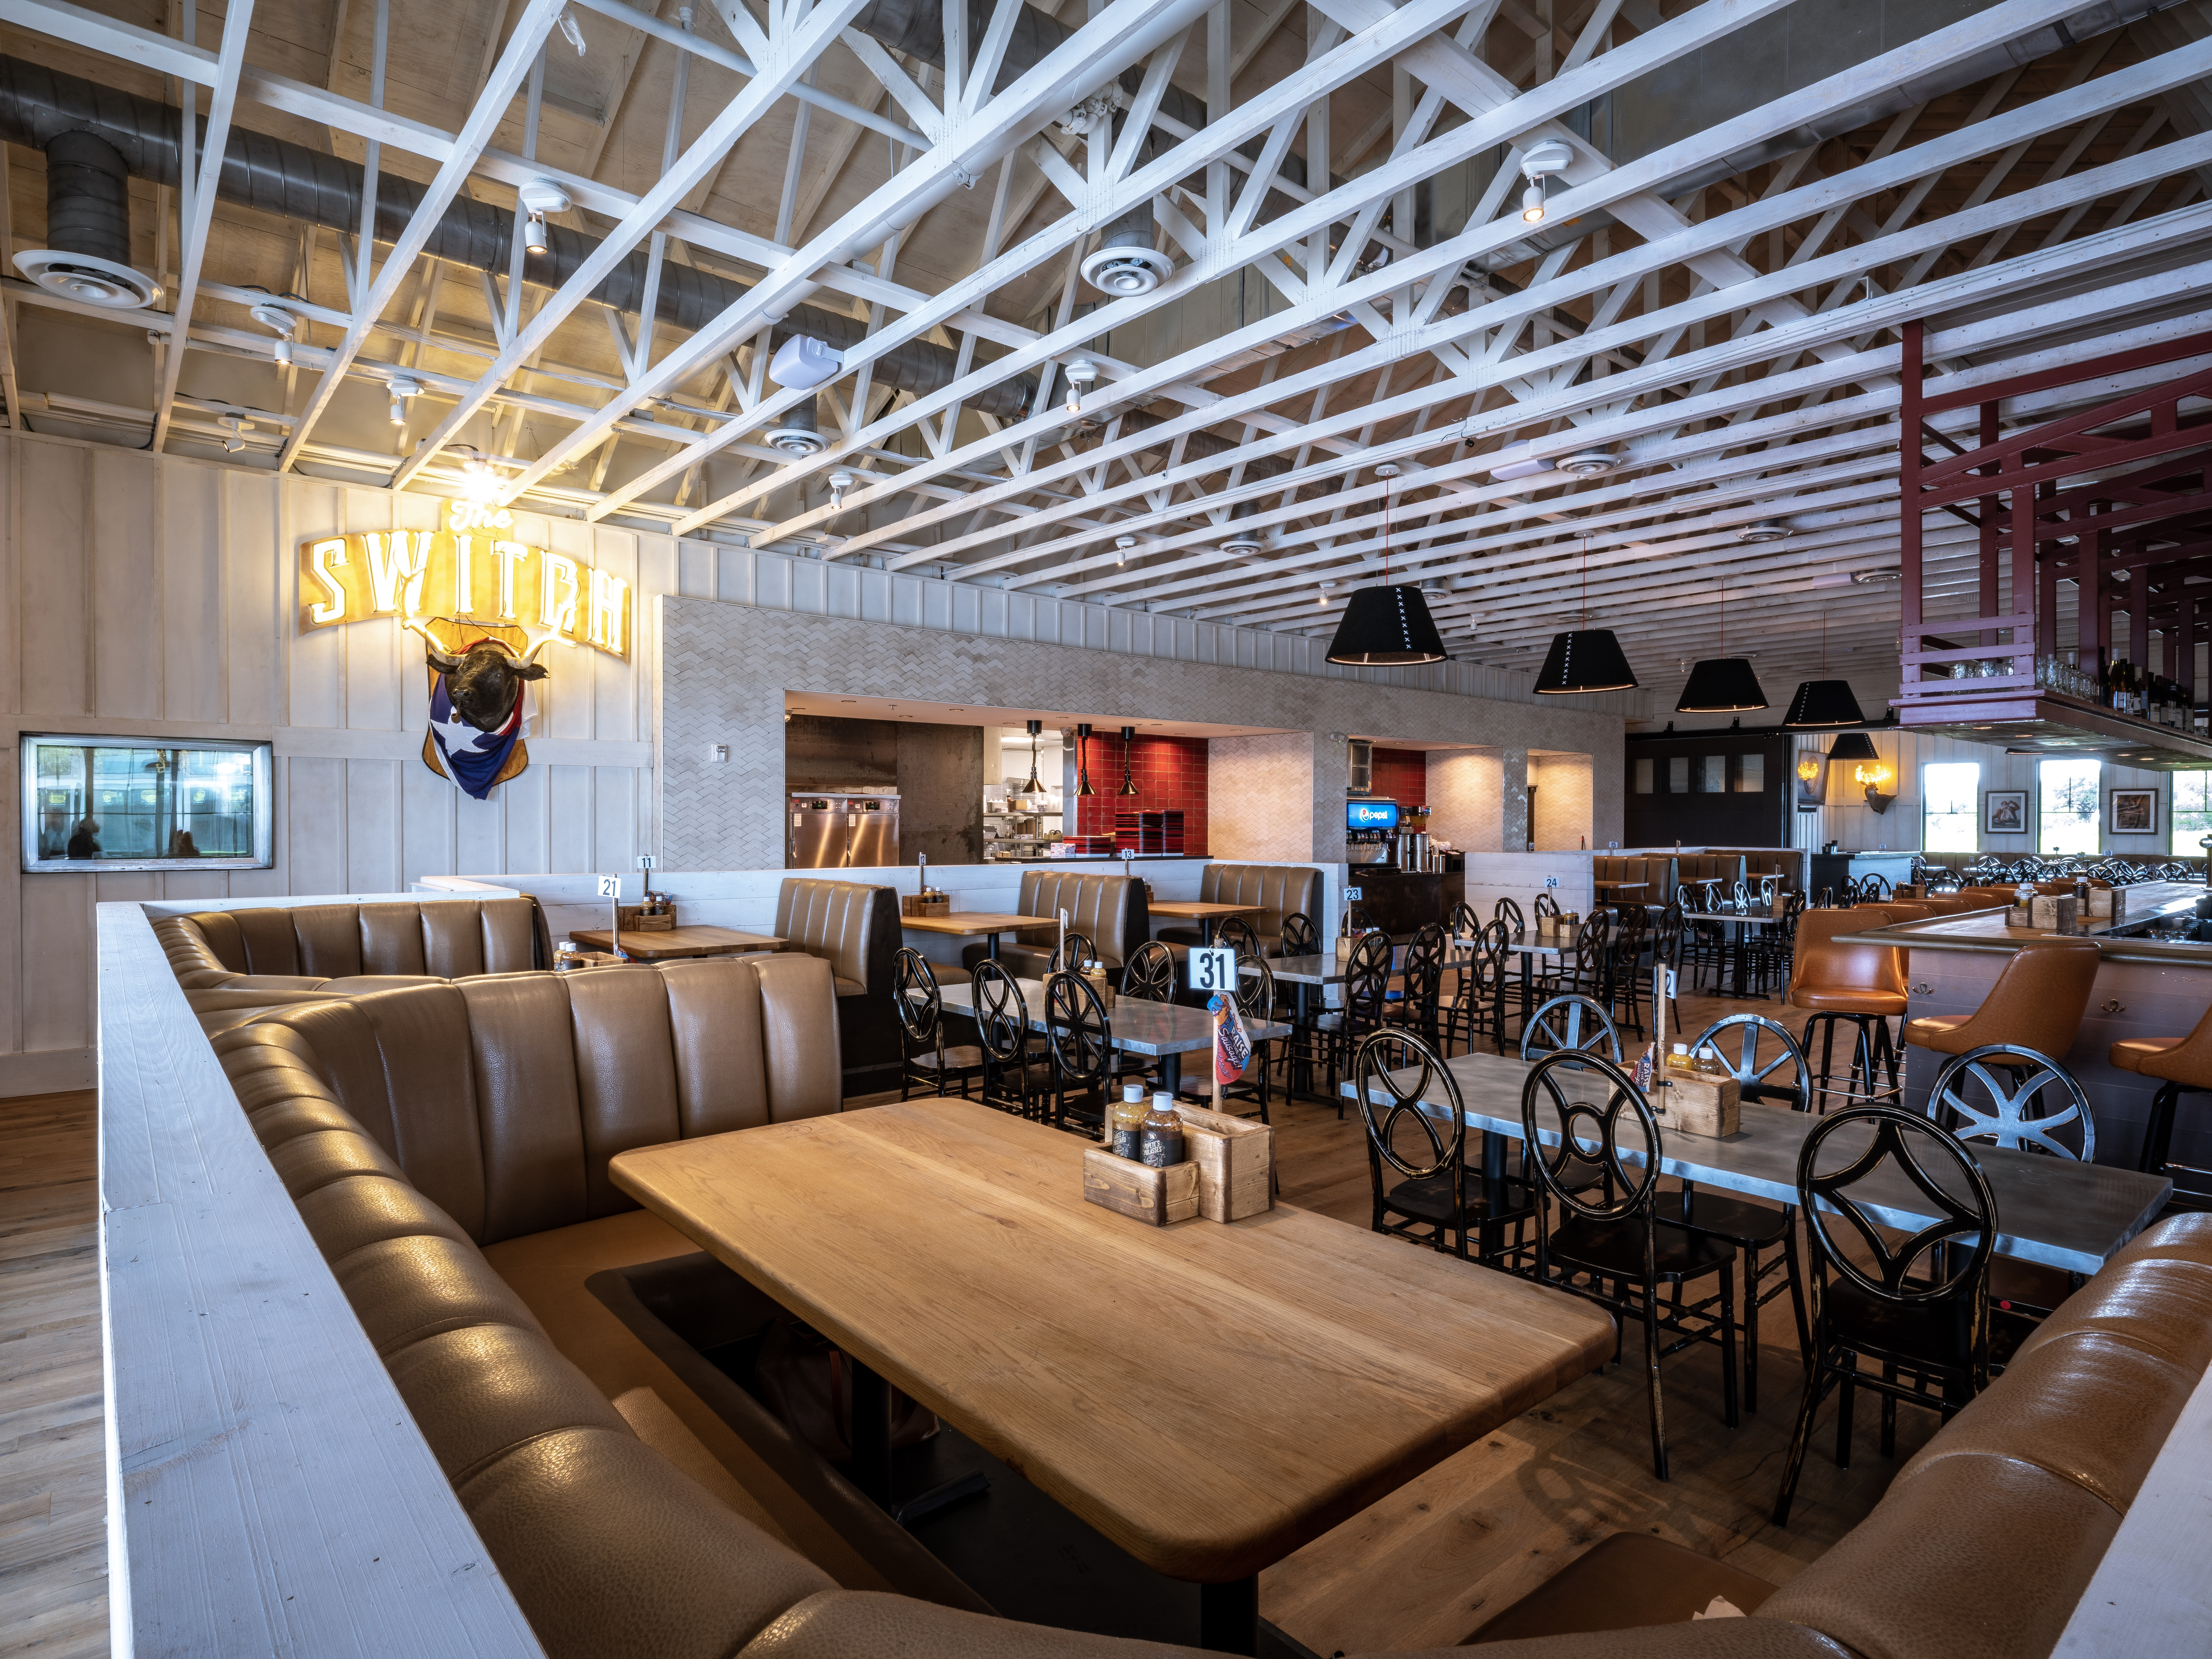 The dining room at The Switch